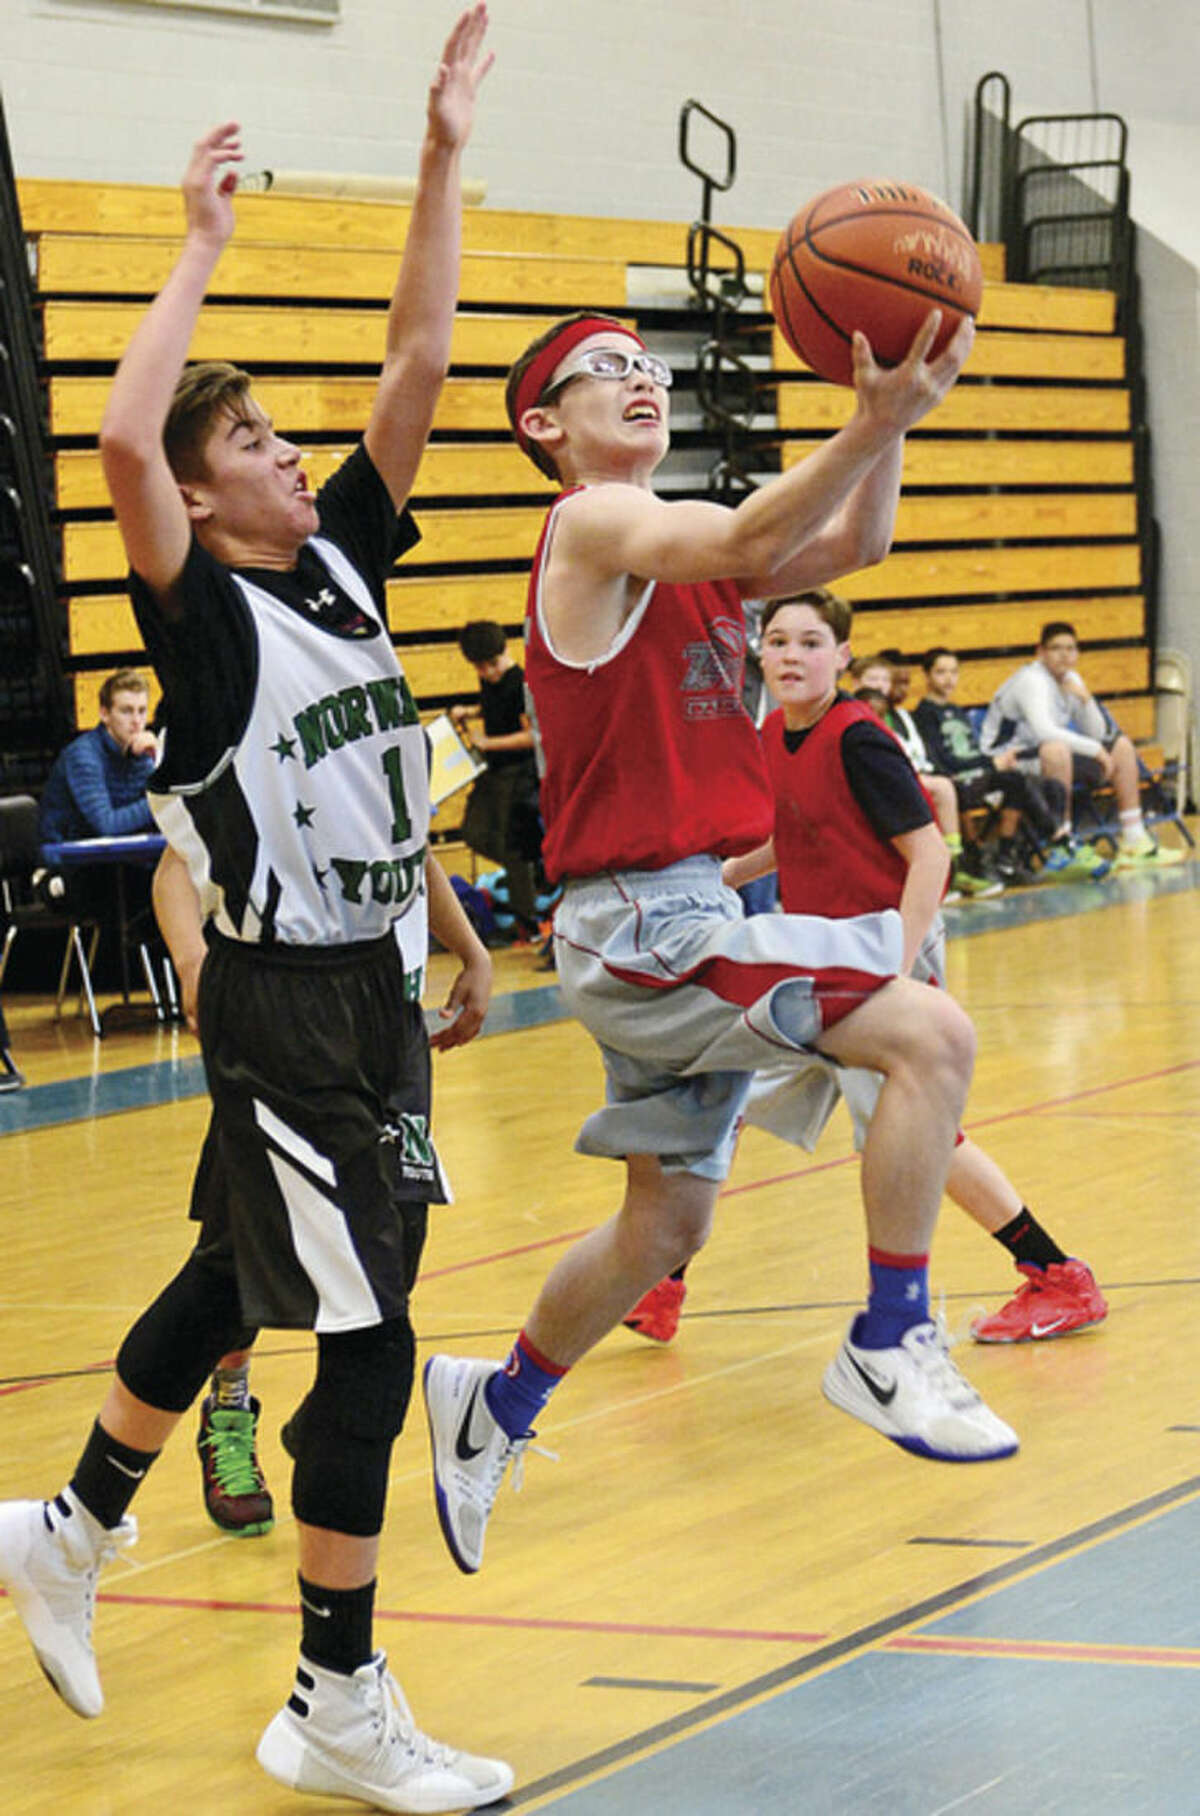 Hour photo / Erik Trautmann Austin Hall of TMT, right, puts up a shot as Peter Meyerson of Norwalk Youth defends during the seventh grade championship game of the Fairfield County Basketball League on Saturday at Ridgefield High. TMT defeated Youth 55-46 to claim the title.